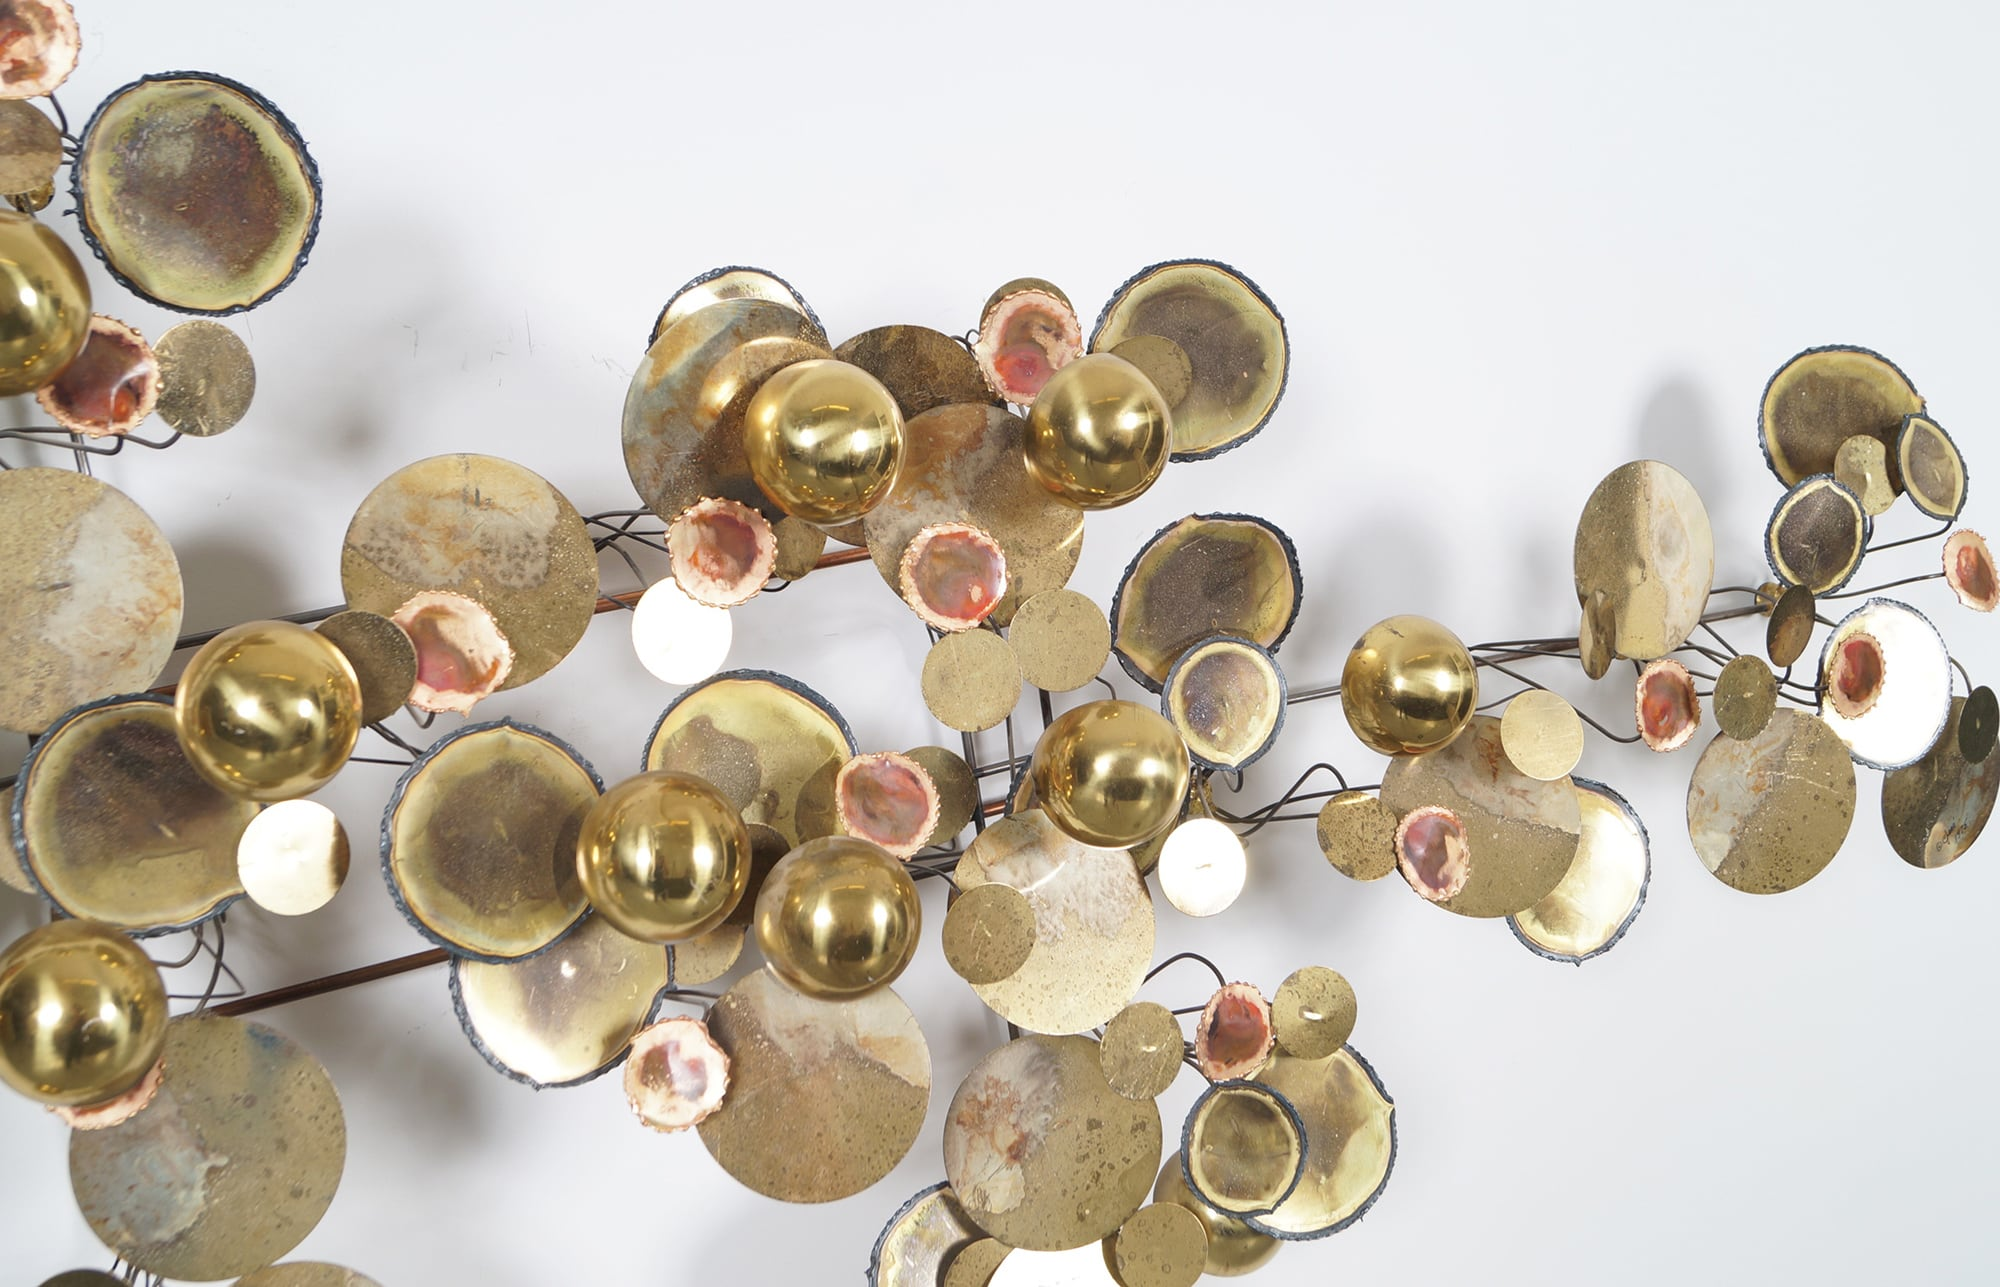 Vintage Raindrops Wall Sculpture by Curtis Jere